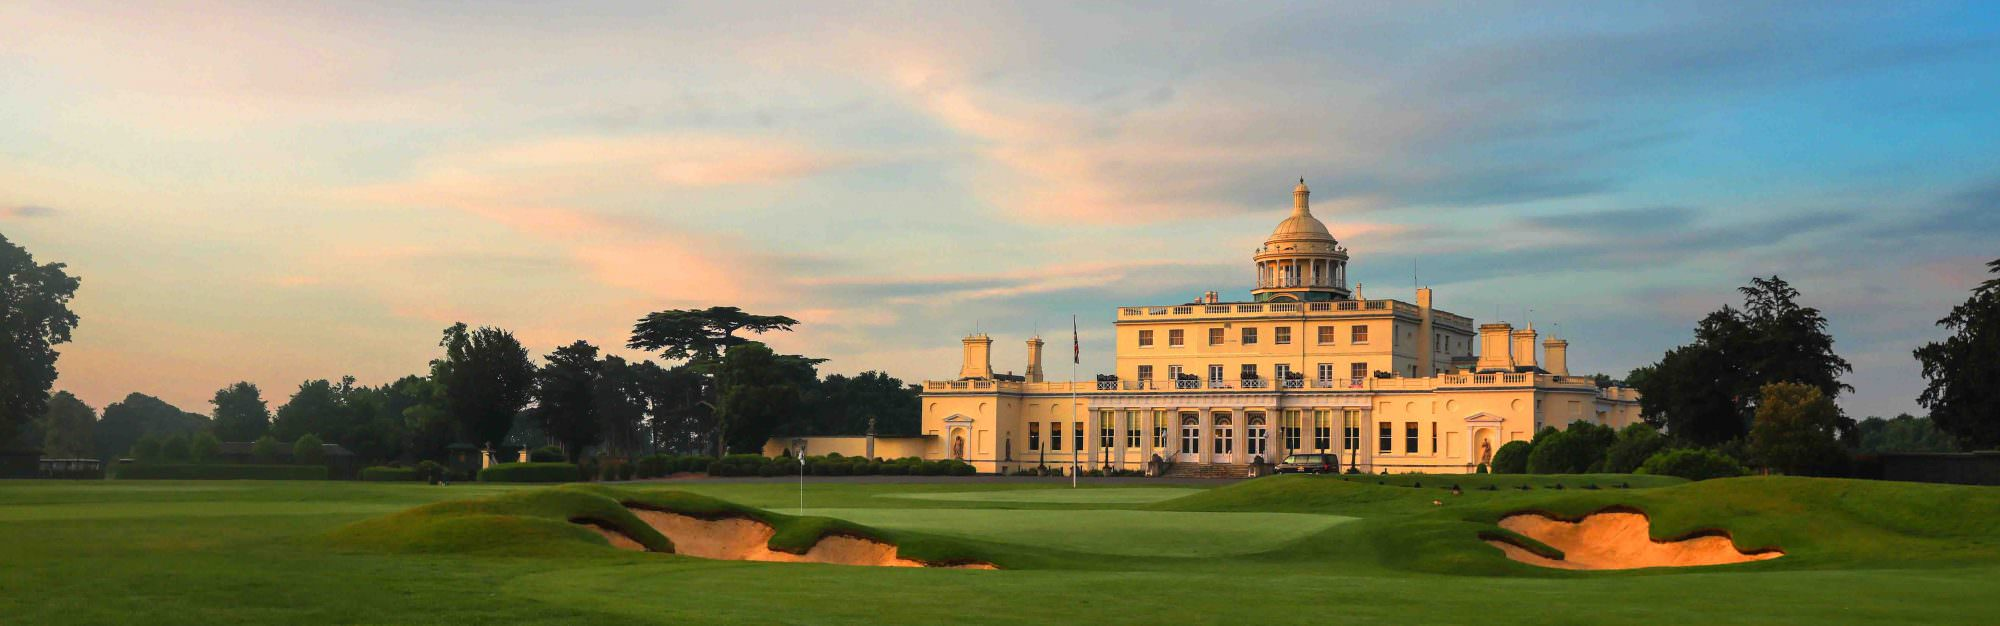 Sand wedge or spade? Why Stoke Park loves its bunkers